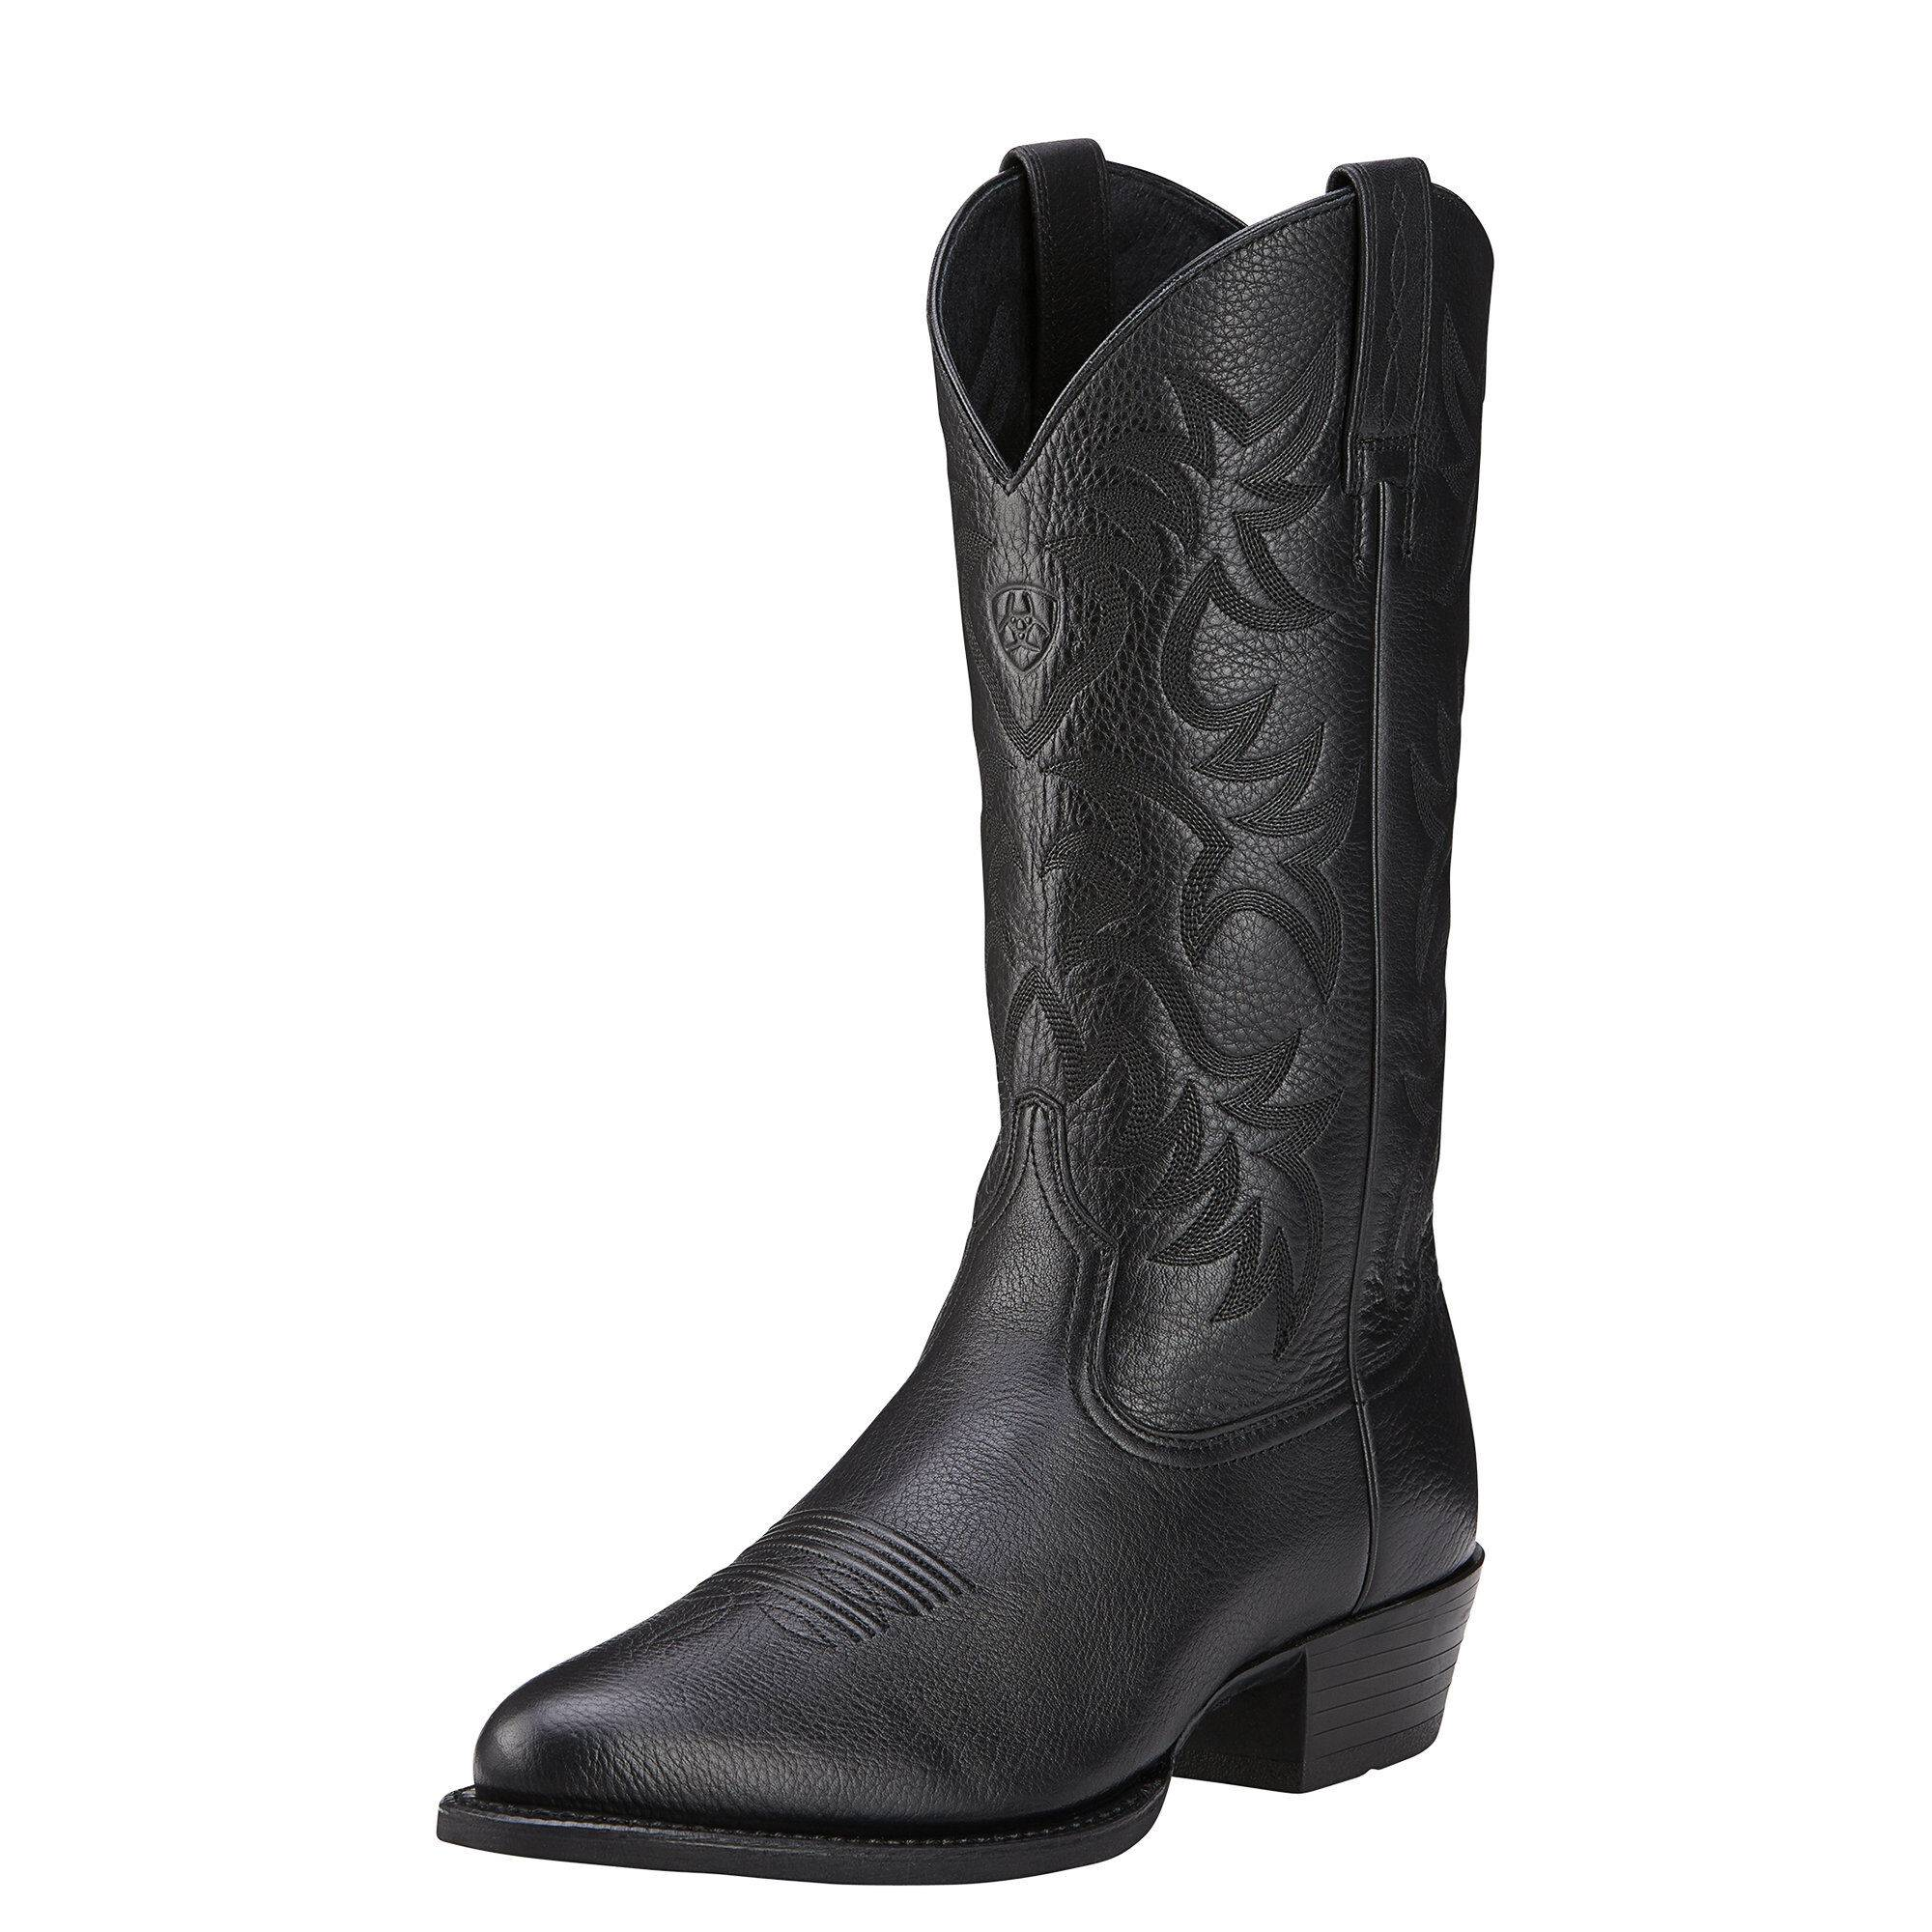 Ariat Men's Heritage R Toe Western Boots in Black Deertan Leather, Size 8 D / Medium by Ariat